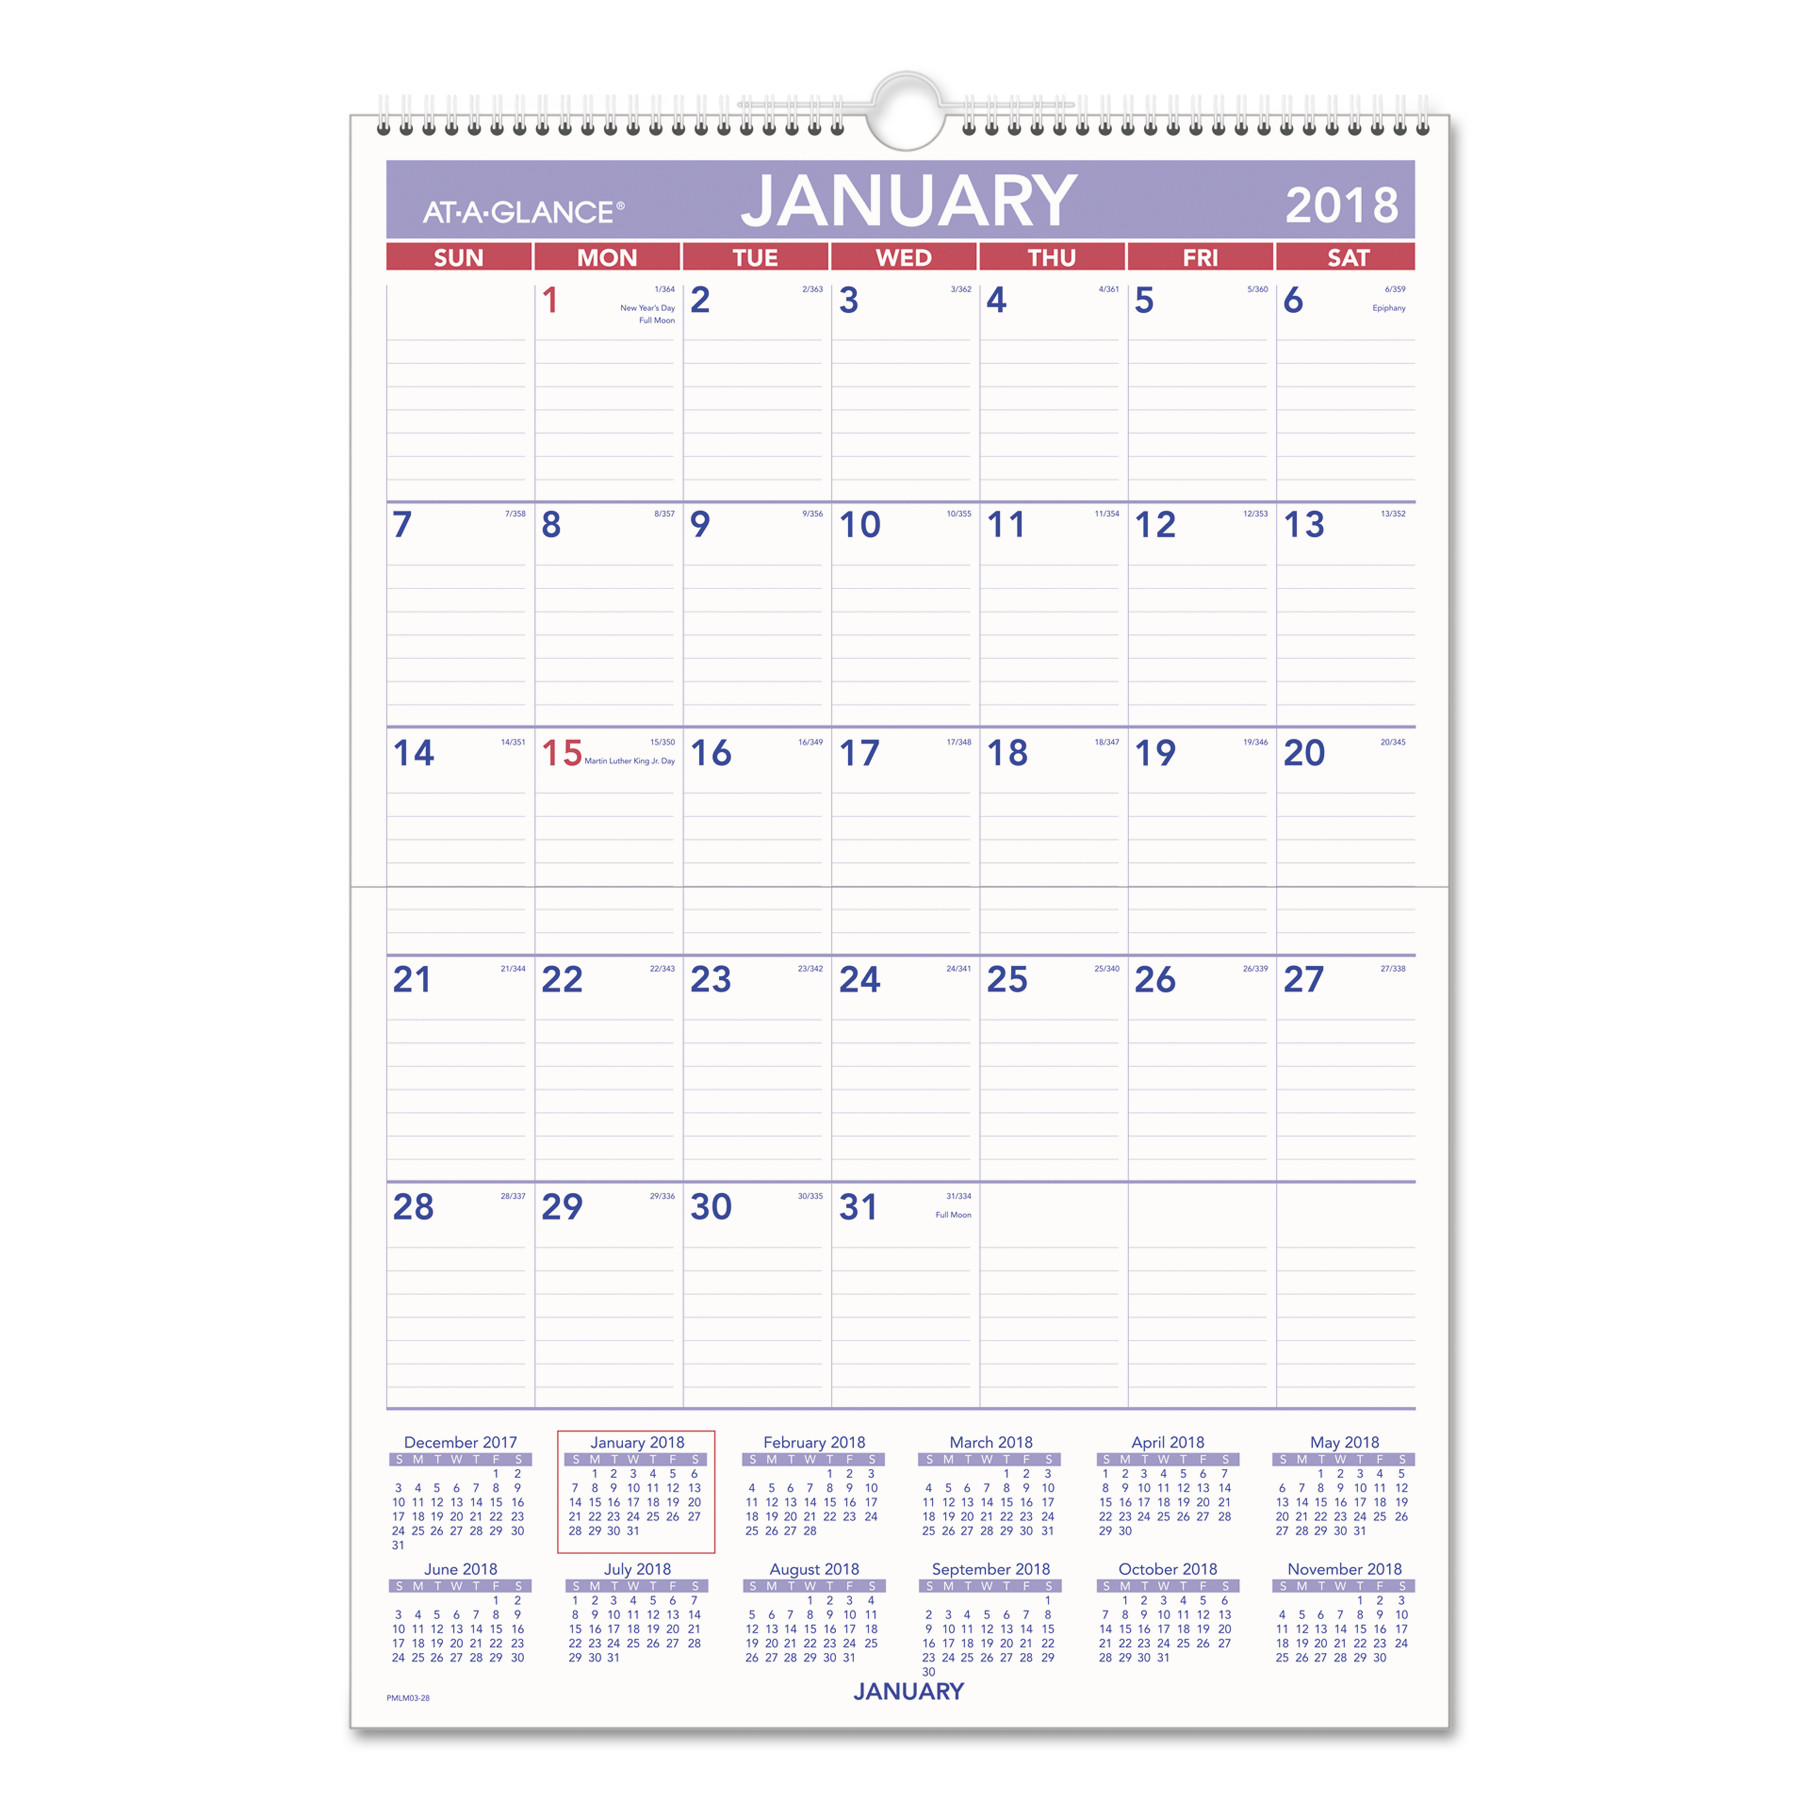 AT-A-GLANCE Erasable Wall Calendar, 15 1 2 x 22 3 4, White, 2018 by AT-A-GLANCE